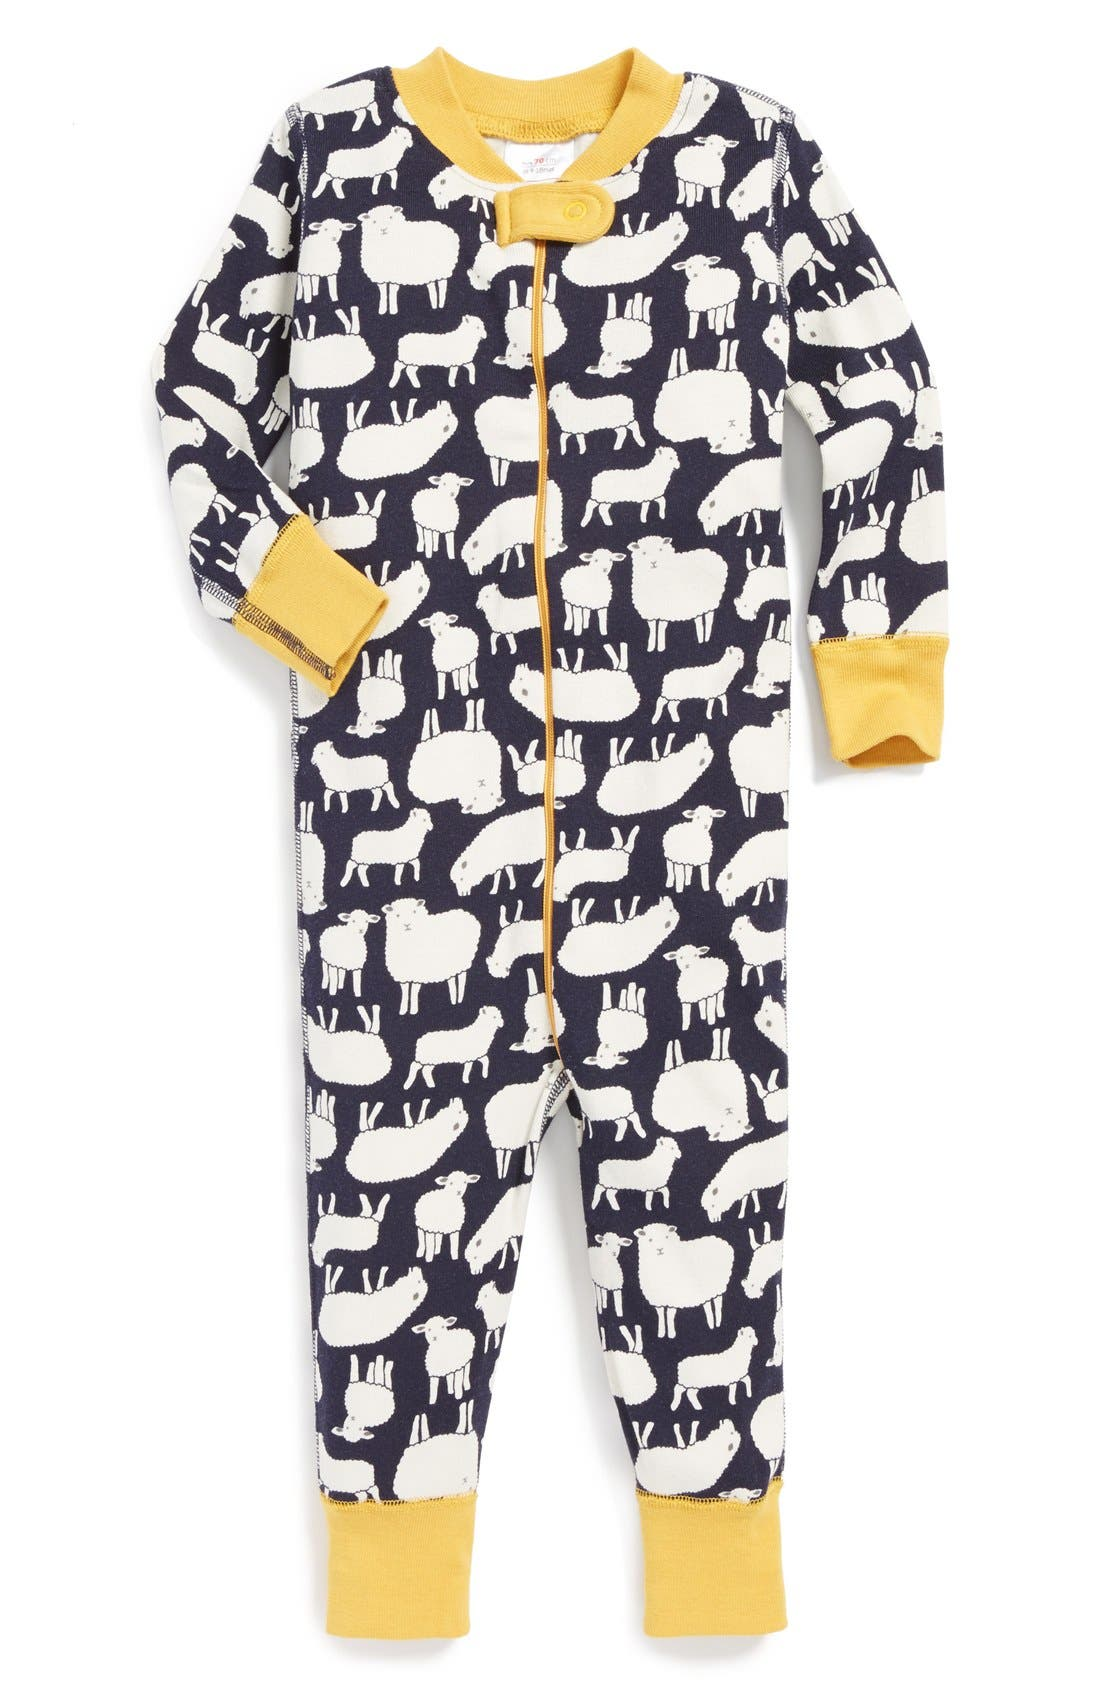 Alternate Image 1 Selected - Hanna Andersson Fitted Romper (Baby)